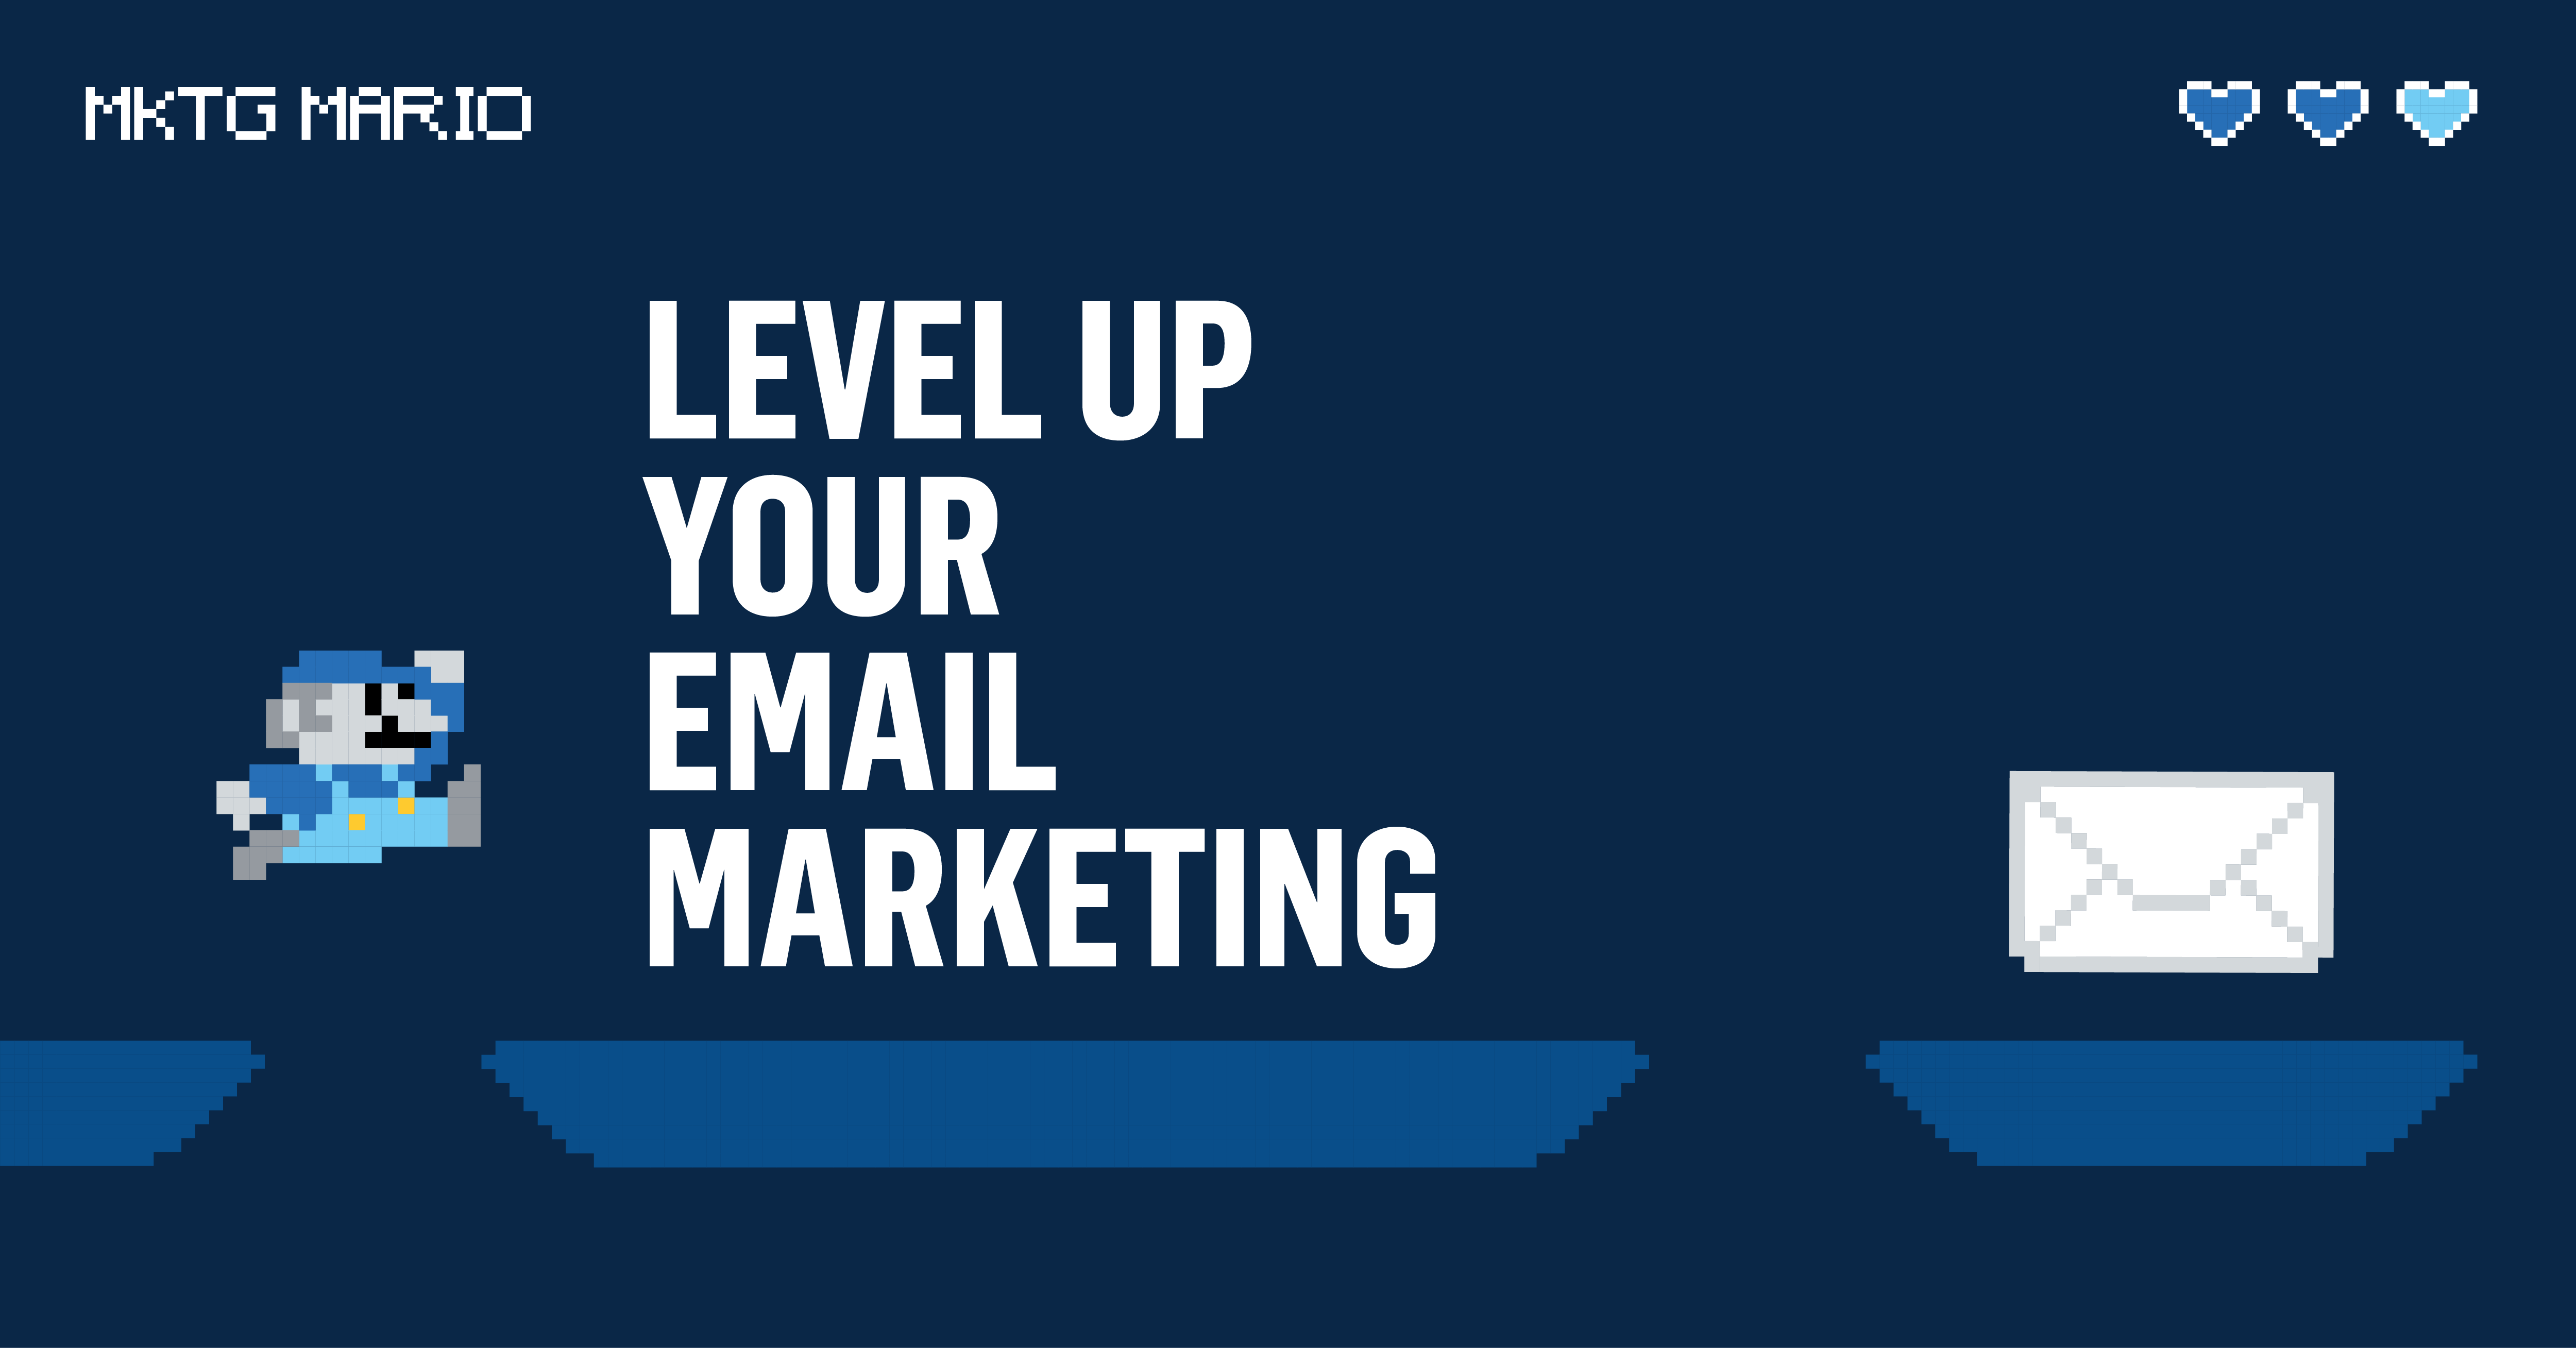 19-09 Level Up Your Email Marketing-01